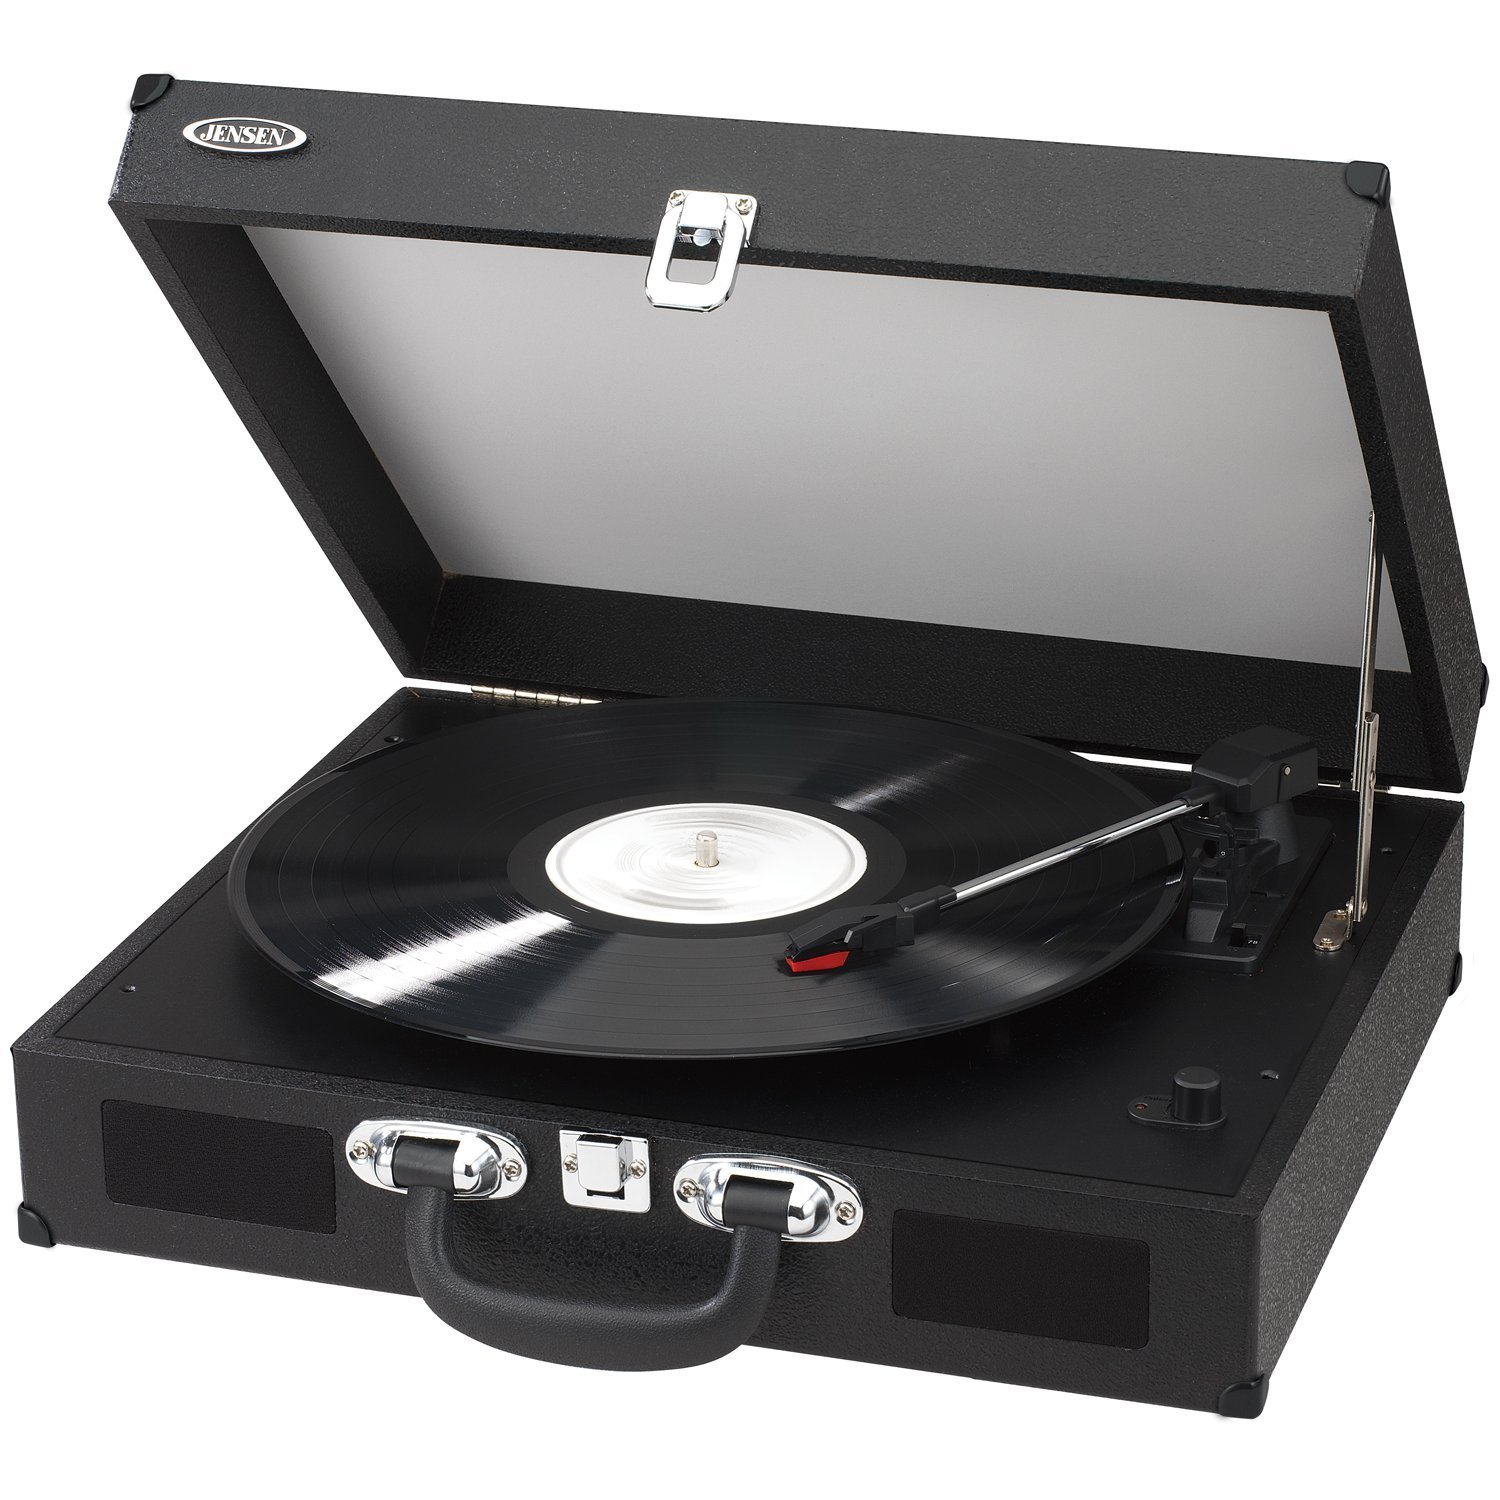 Record Player For Girls, Jensen Jta-410-blk Small Vinyl Portable Turntable Player